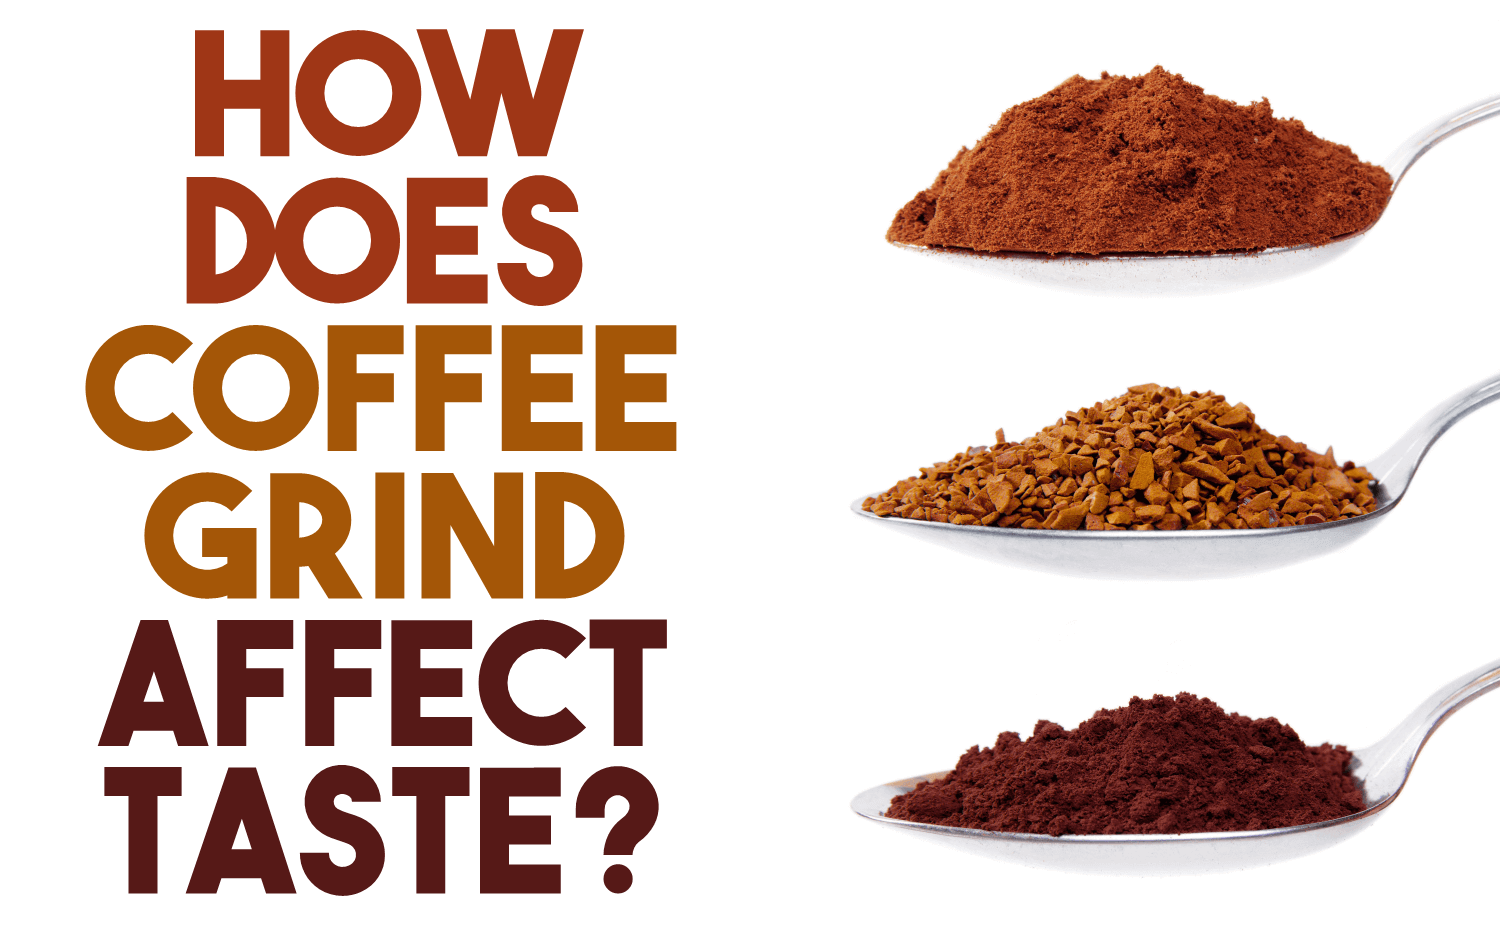 How Does Coffee Grind Affect Taste?